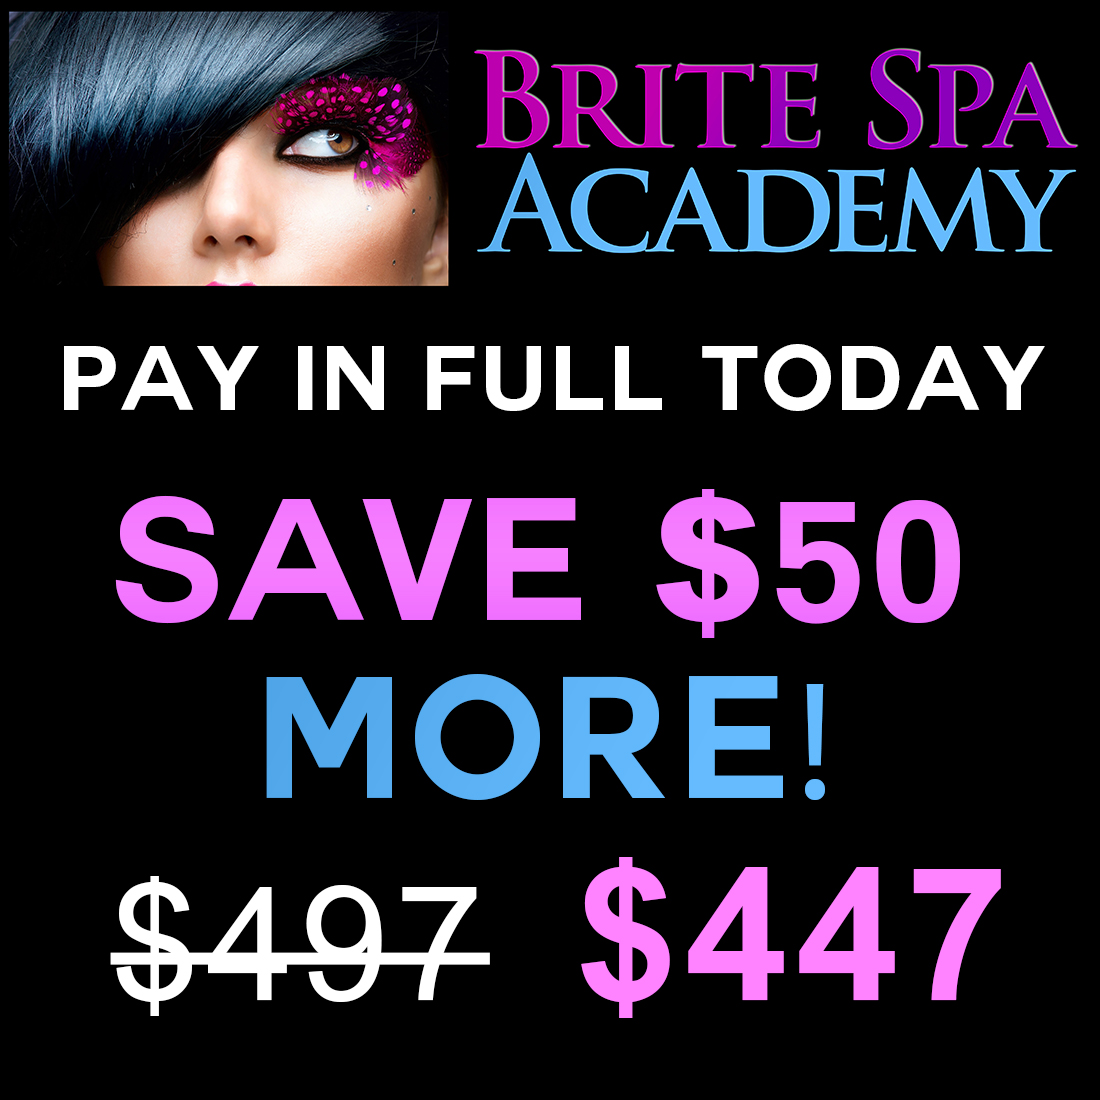 Eyelash Extension Class Fee - SAVE $50 MORE by Paying in Full Today!